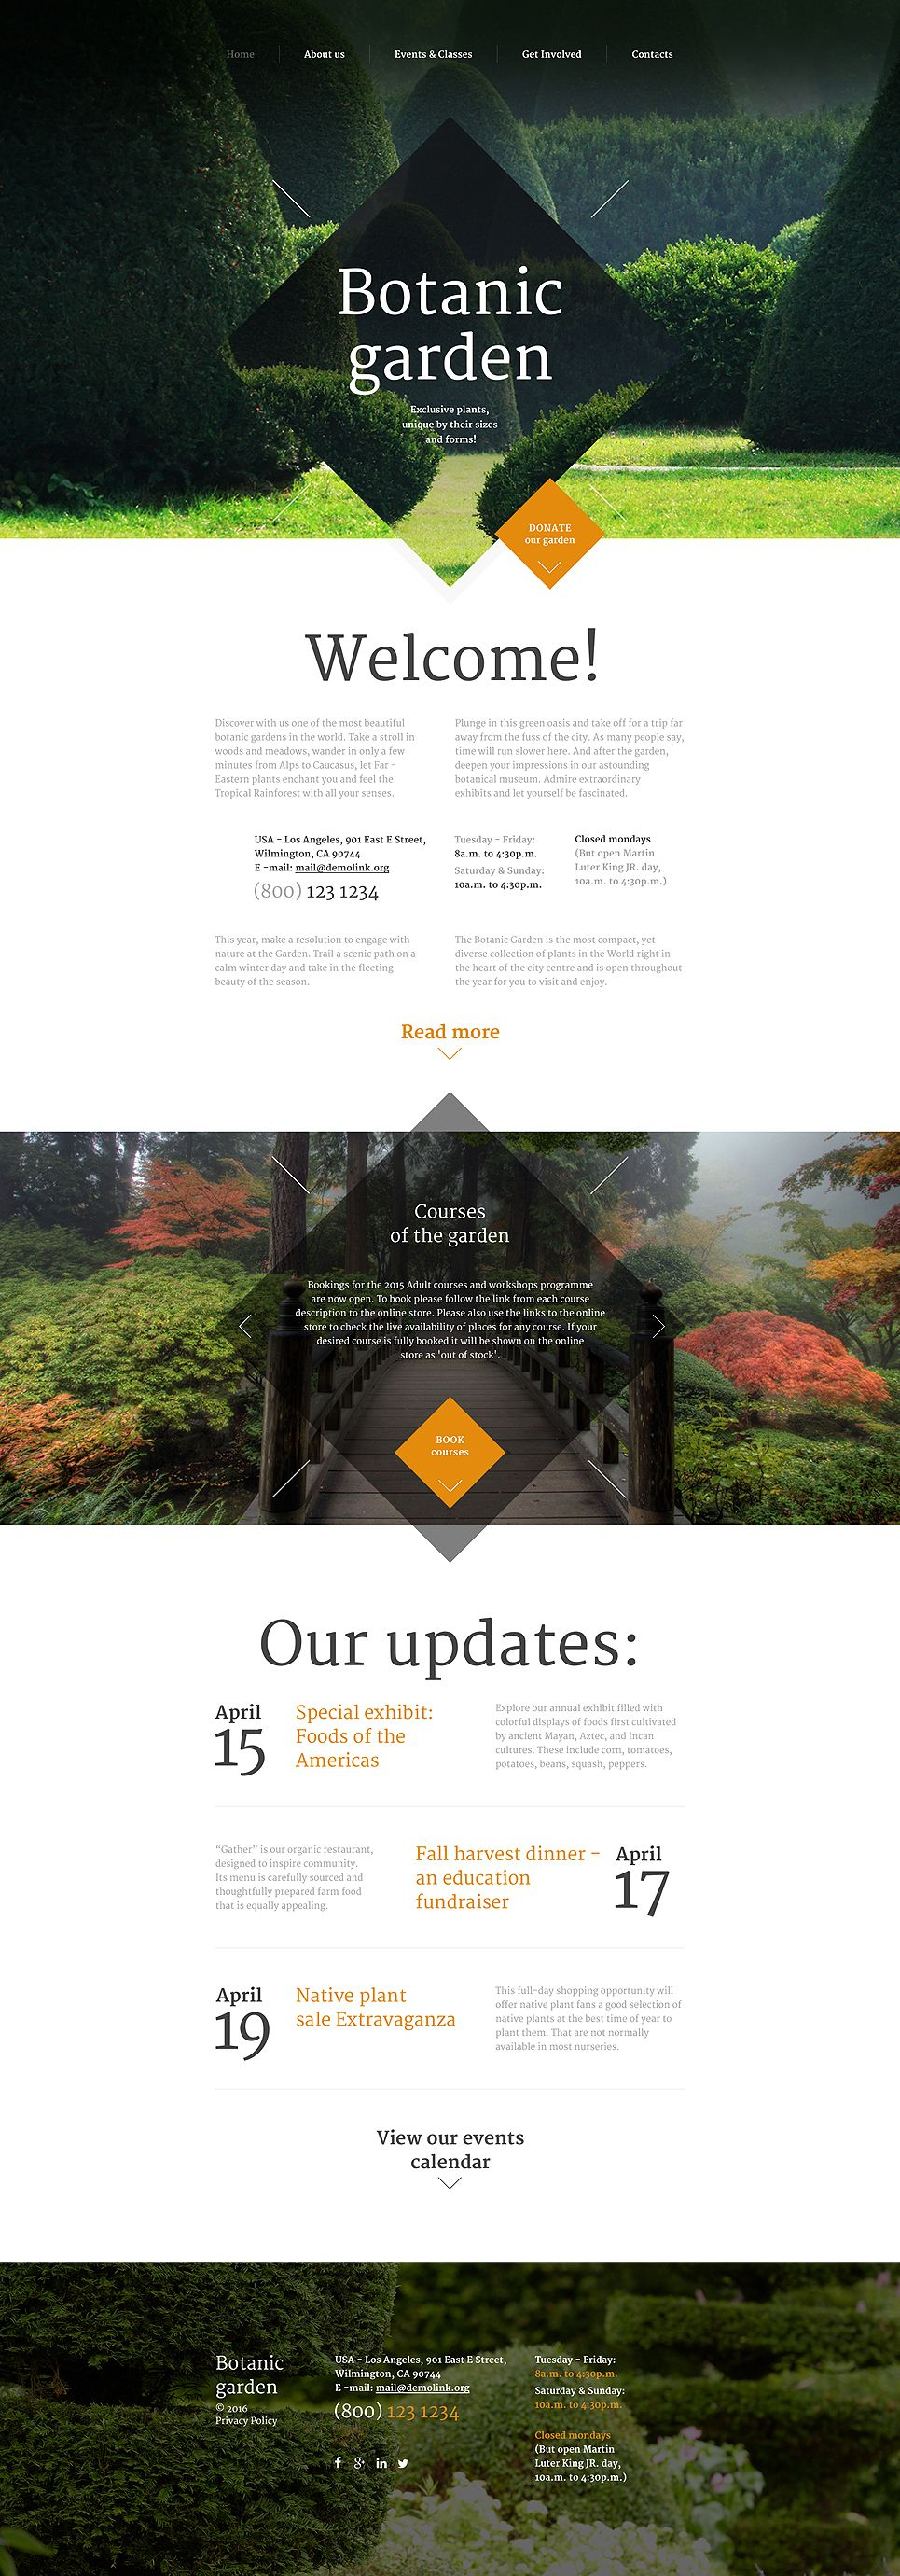 Garden Design Website Ideas Simple Botanic Garden Website Template  Landscape Designs Landscaping . Decorating Inspiration